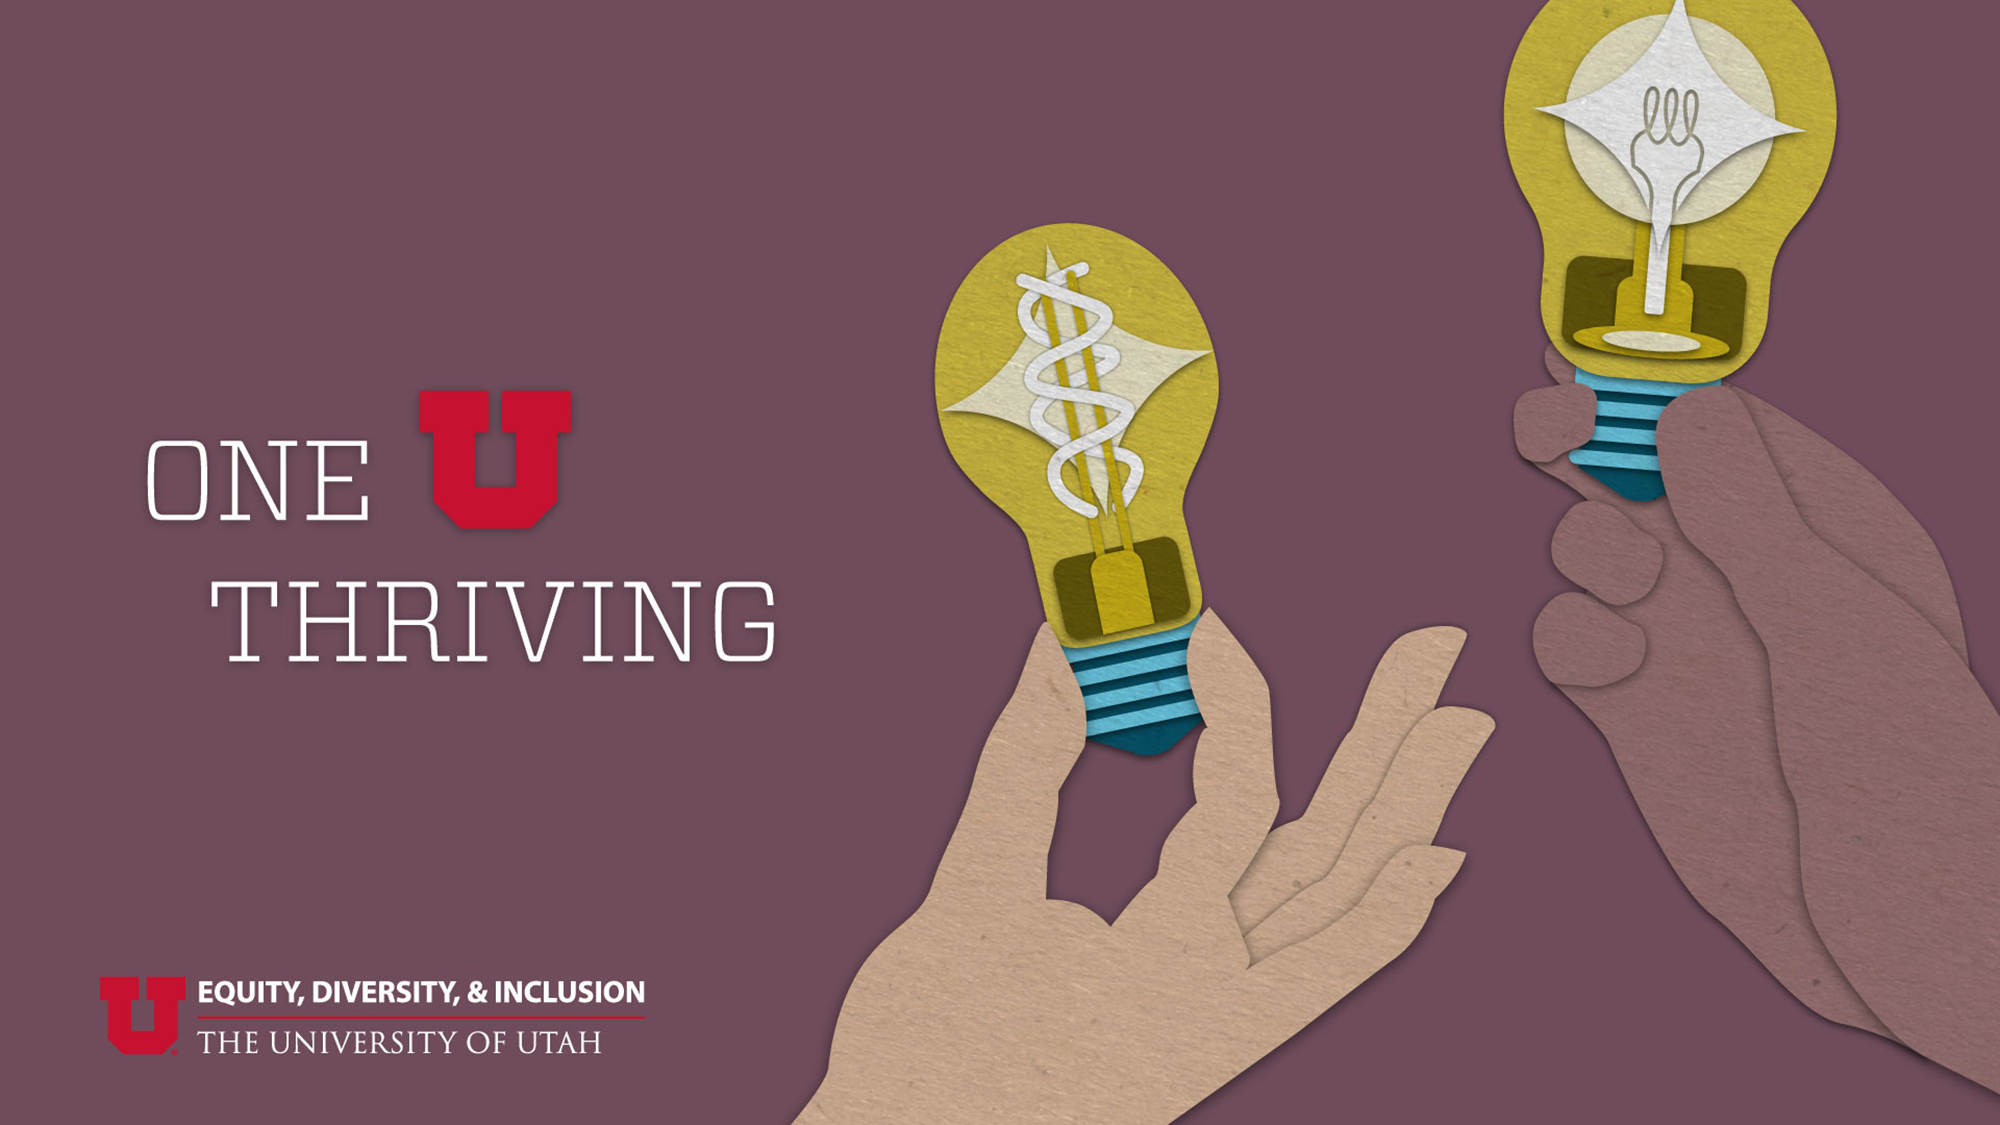 """graphic features two hands, each holding lightbulbs. text reads """"One U Thriving"""" and shows the Equity, Diversity, and Inclusion logo at the University of Utah."""